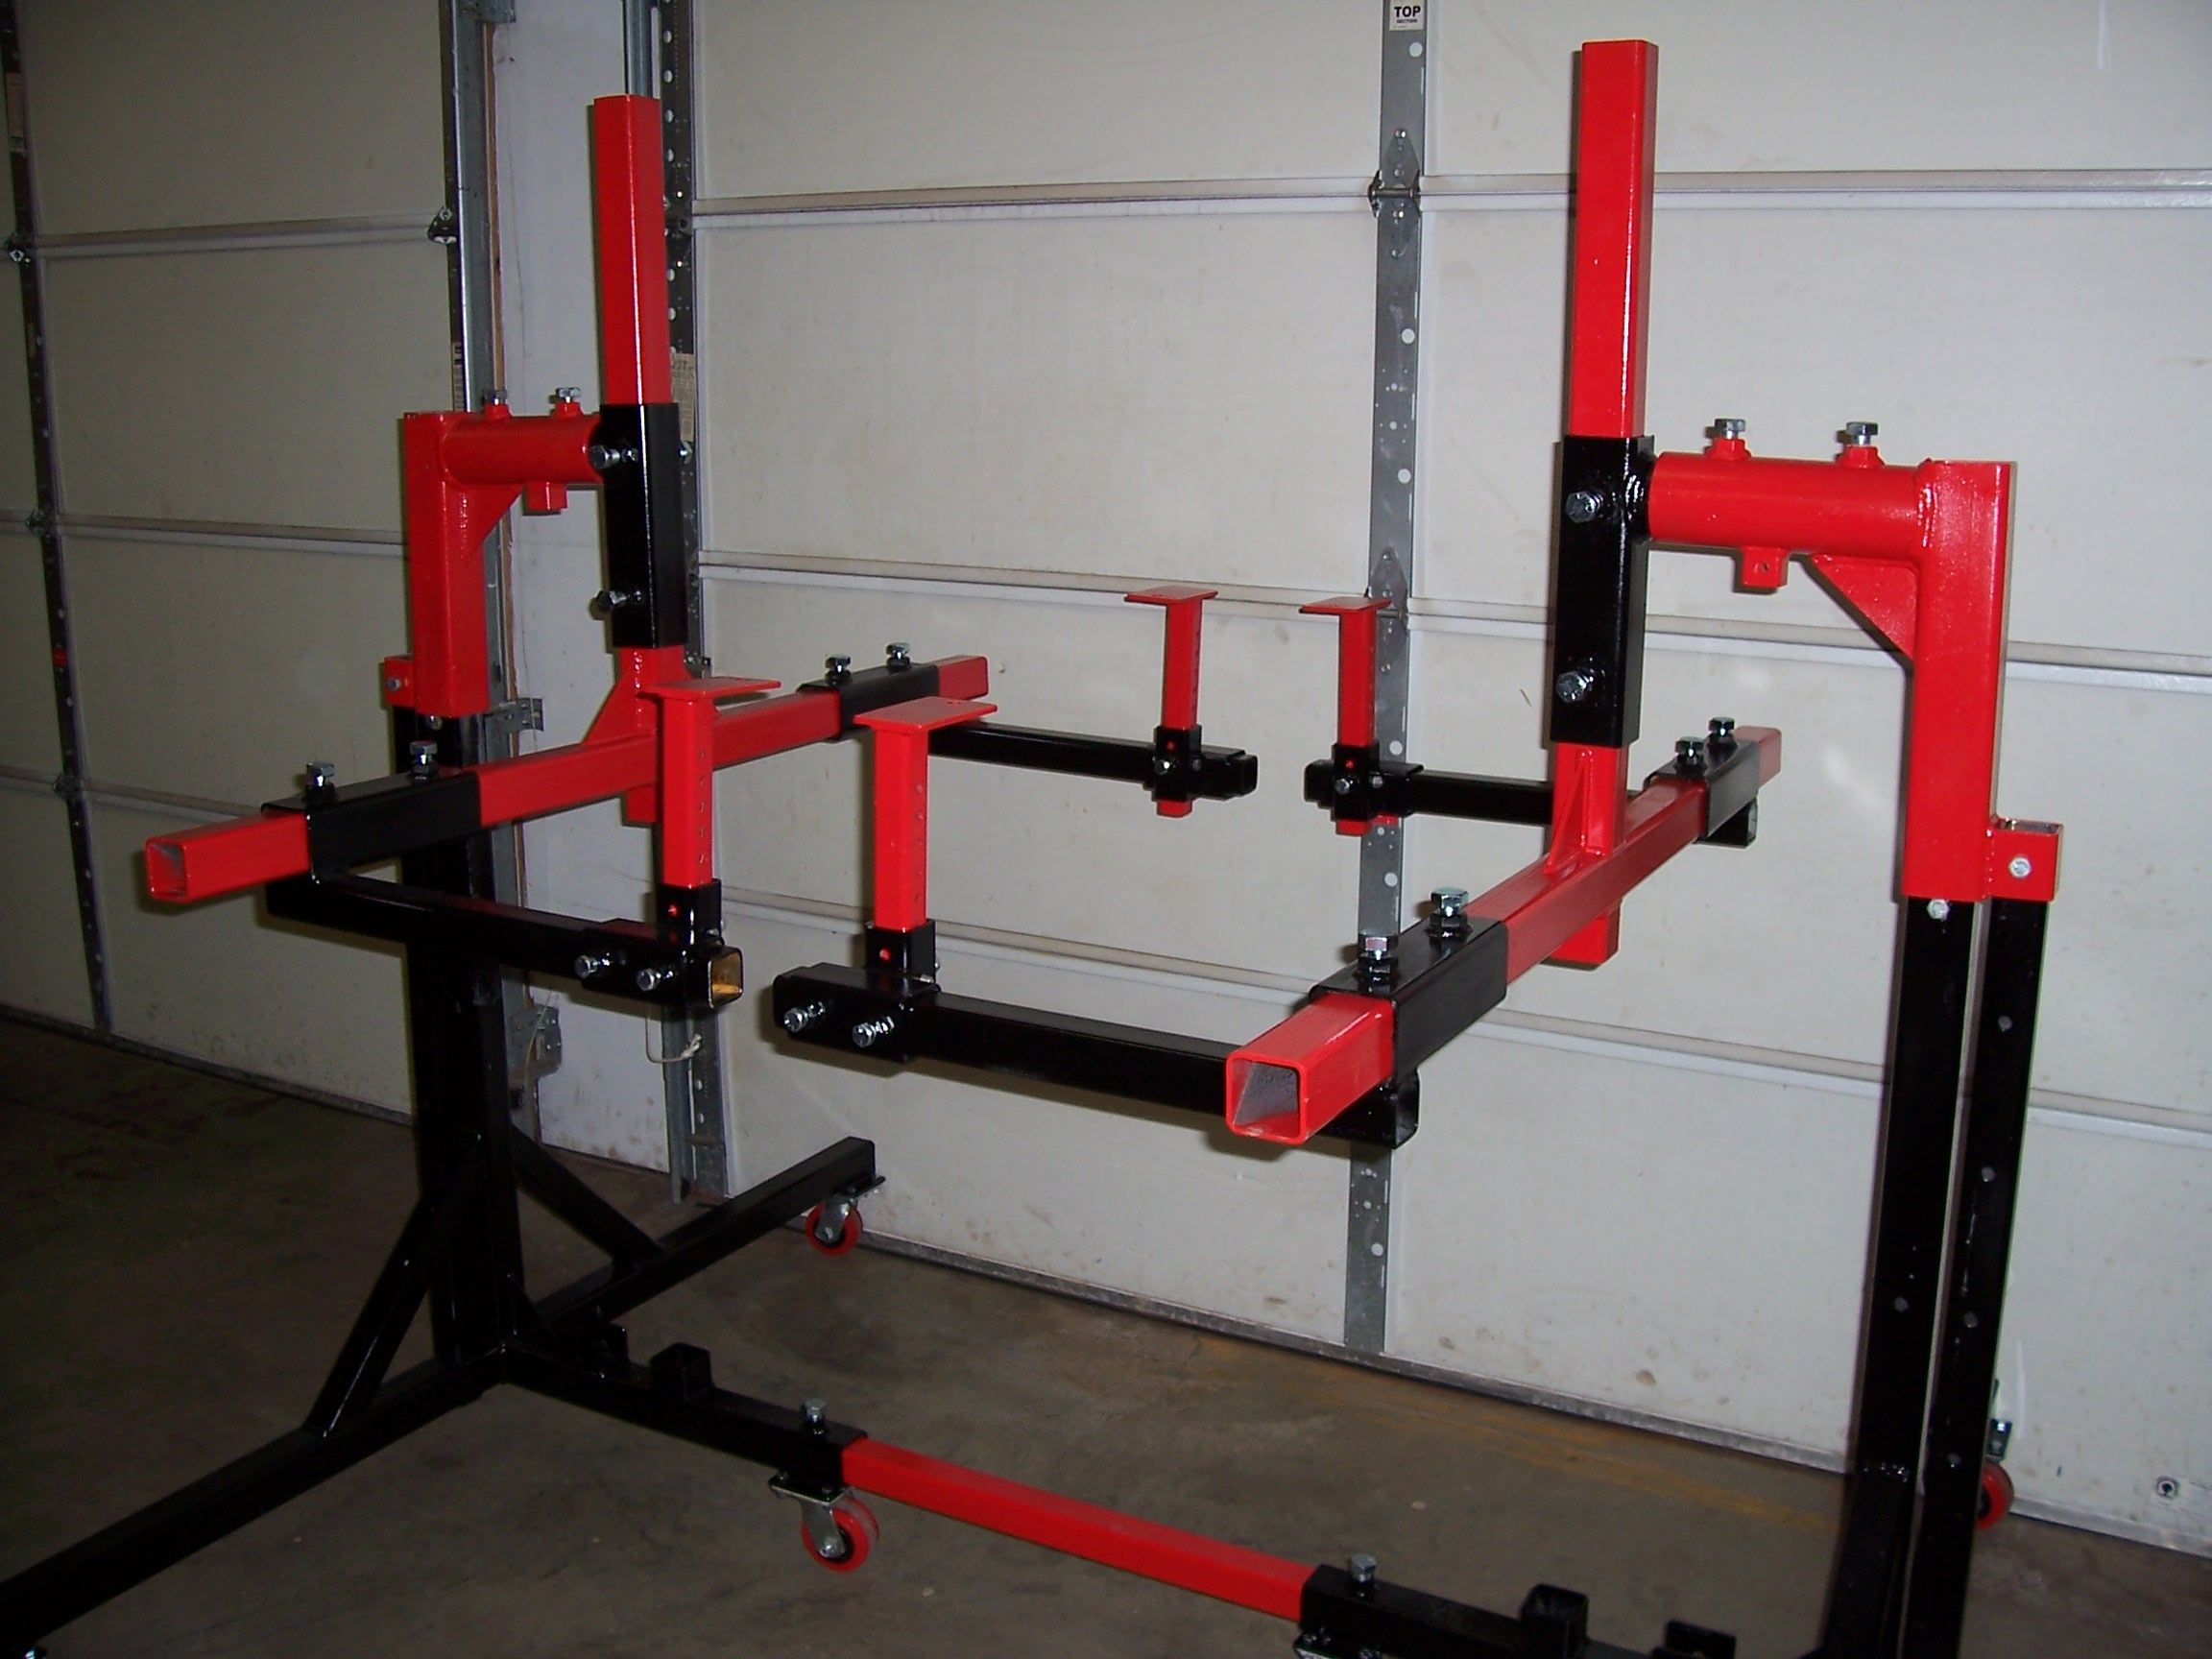 Auto Rotisserie Construction And Ideas Pinterest Welding Projects And Project Ideas